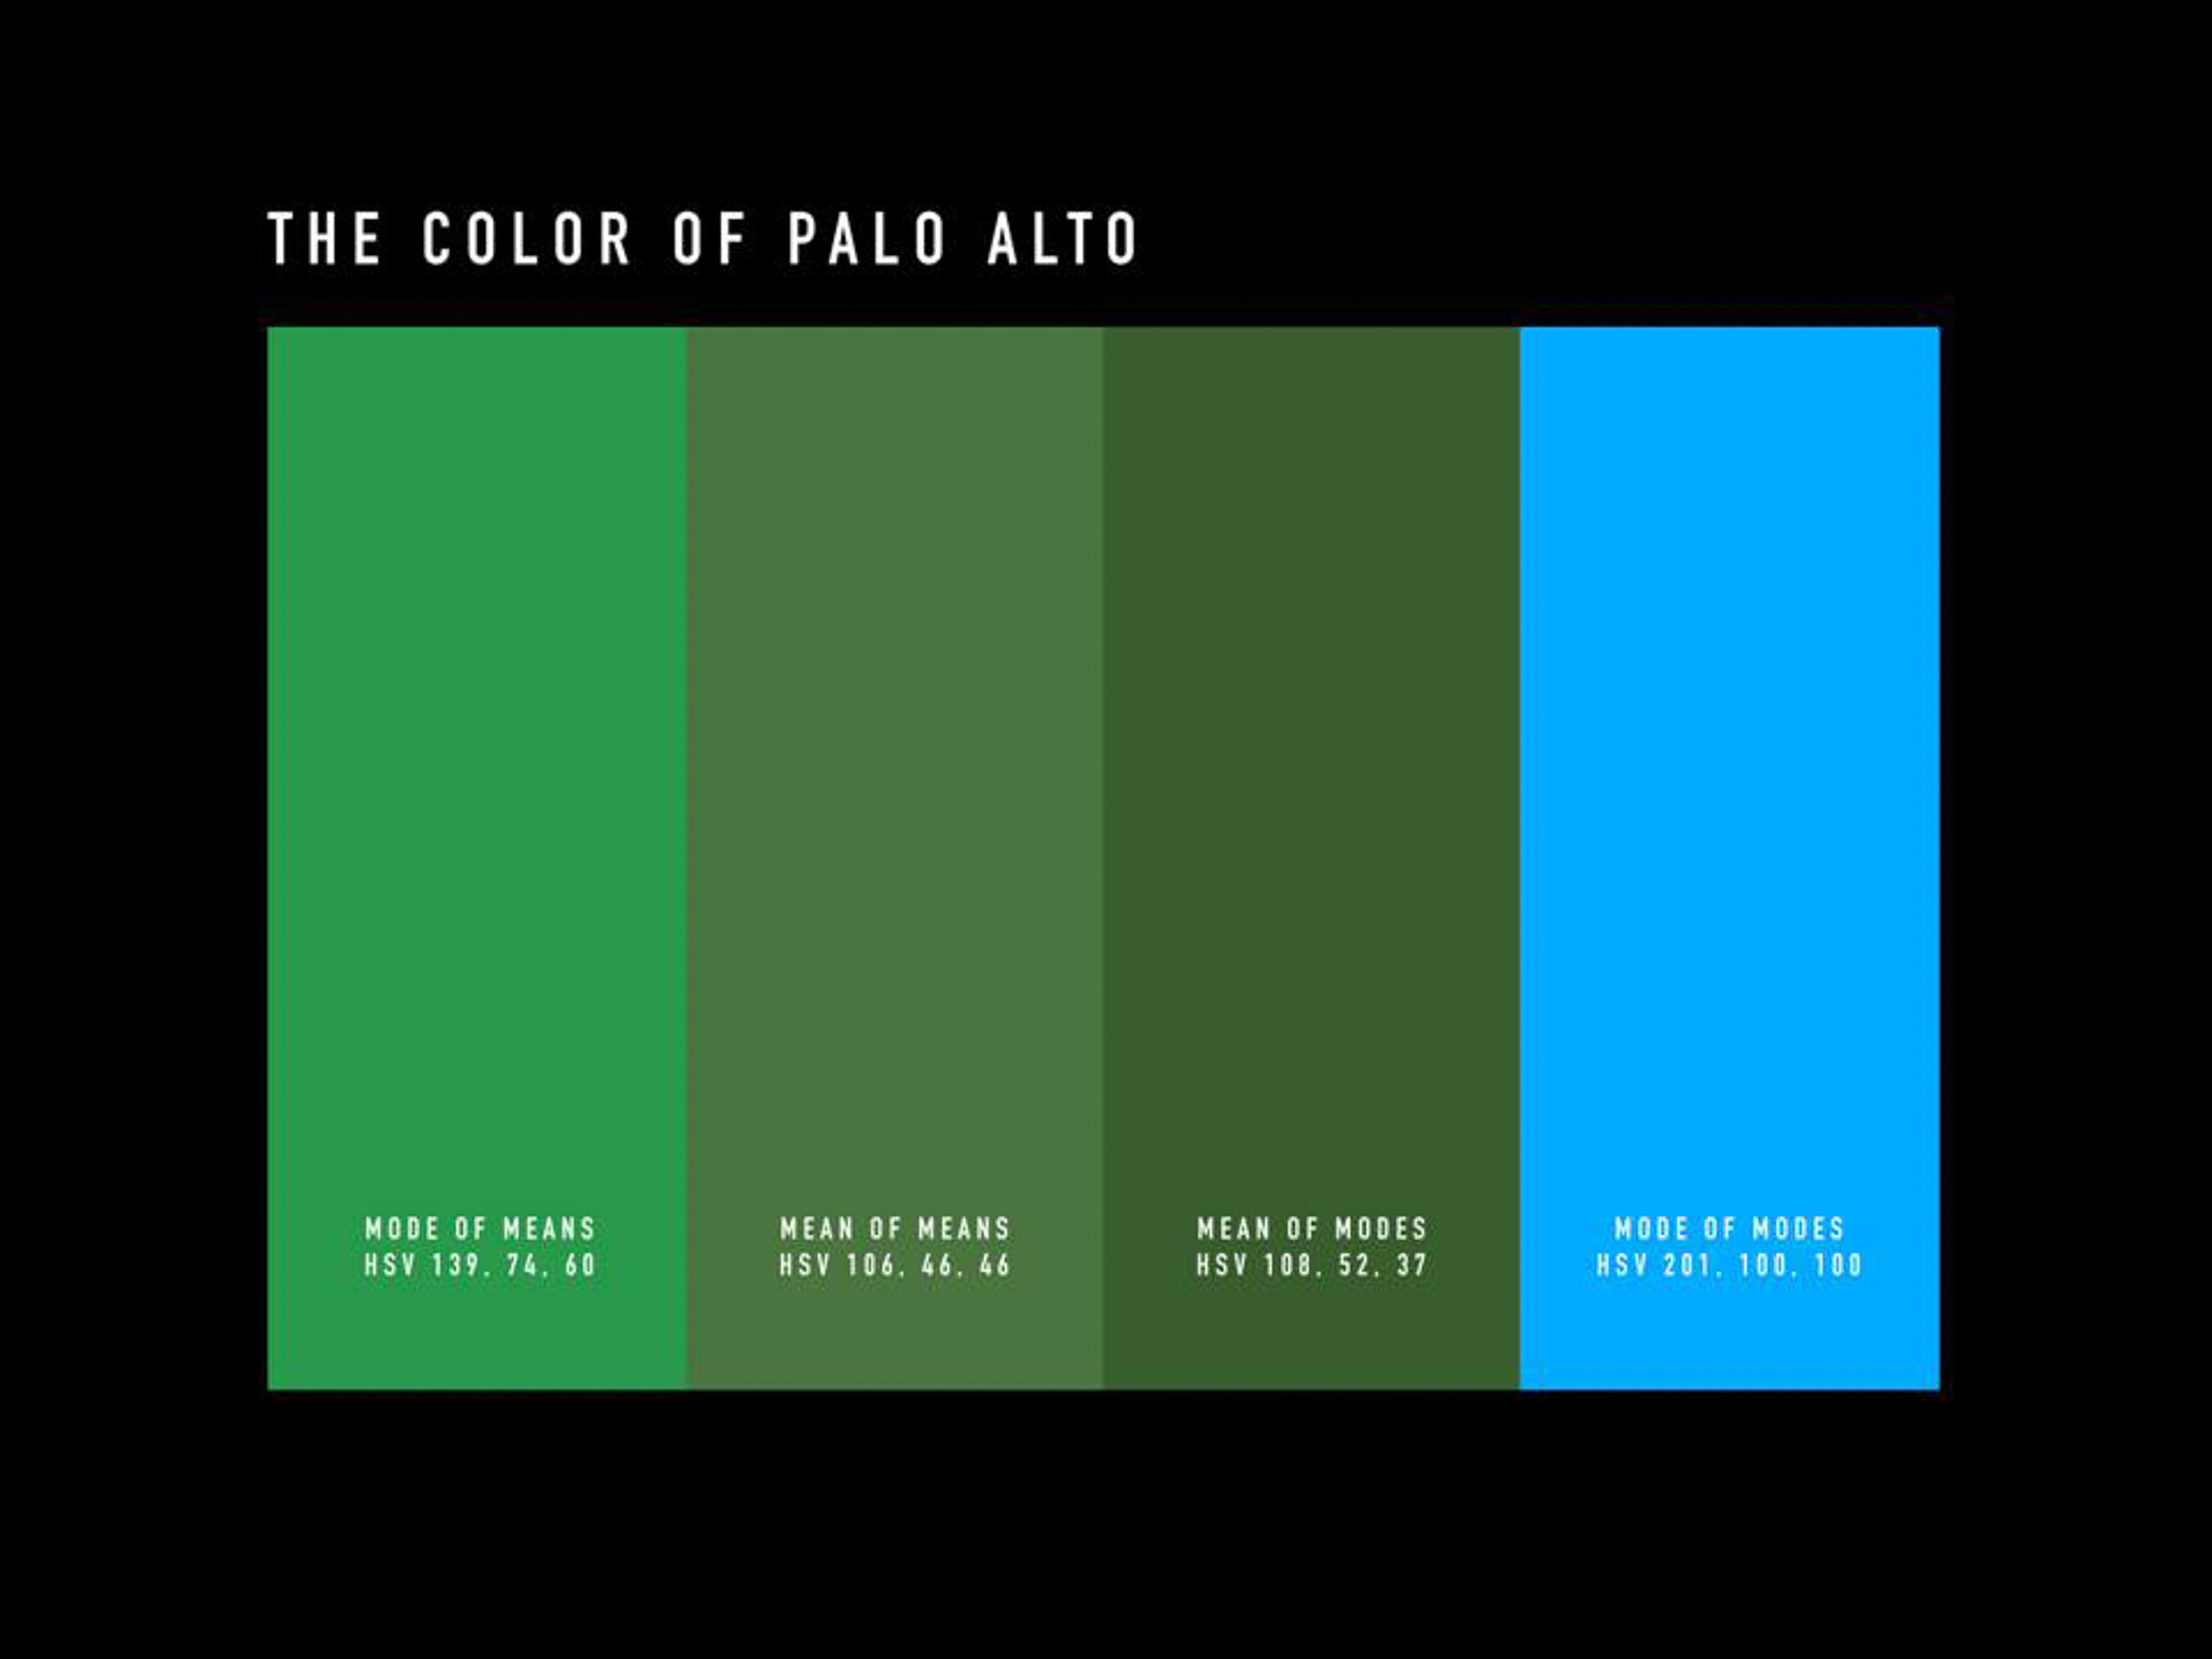 """""""The Color of Palo Alto"""" an art project by Samuel Yates, where he photographed every house and building in Palo Alto to determine an average color value."""